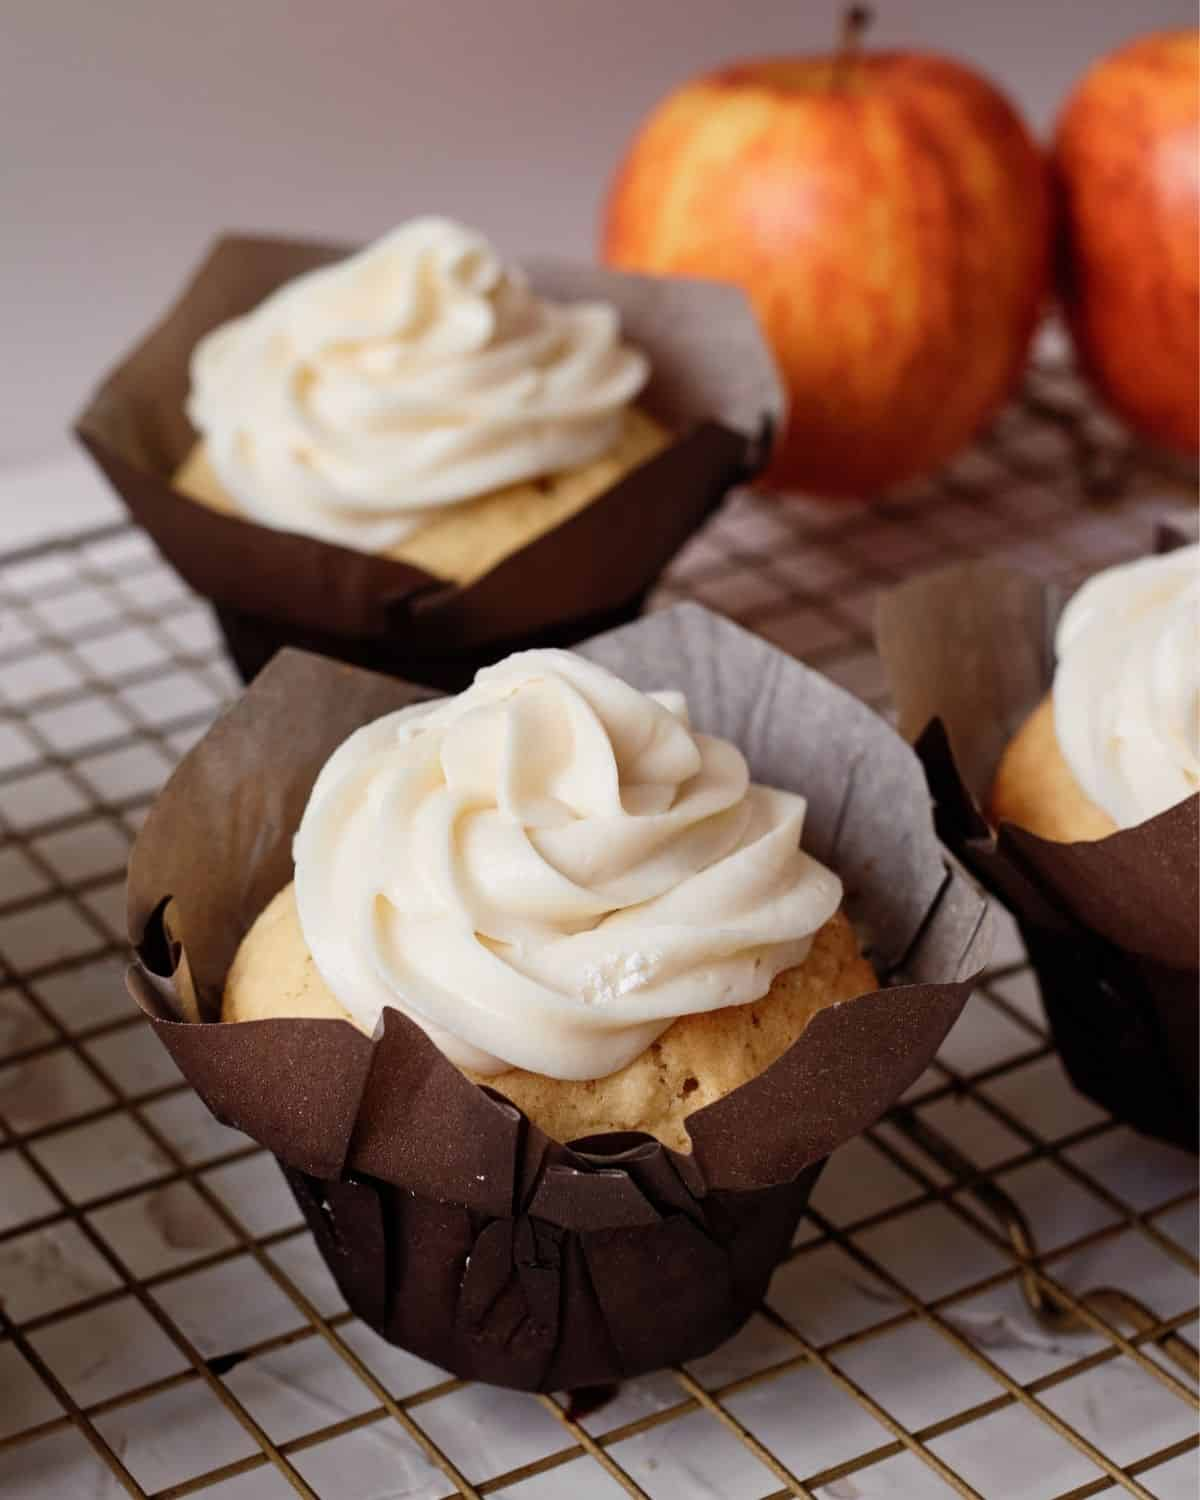 Frosted cupcakes in a dark brown cupcake liner on a baking rack with apples in the background